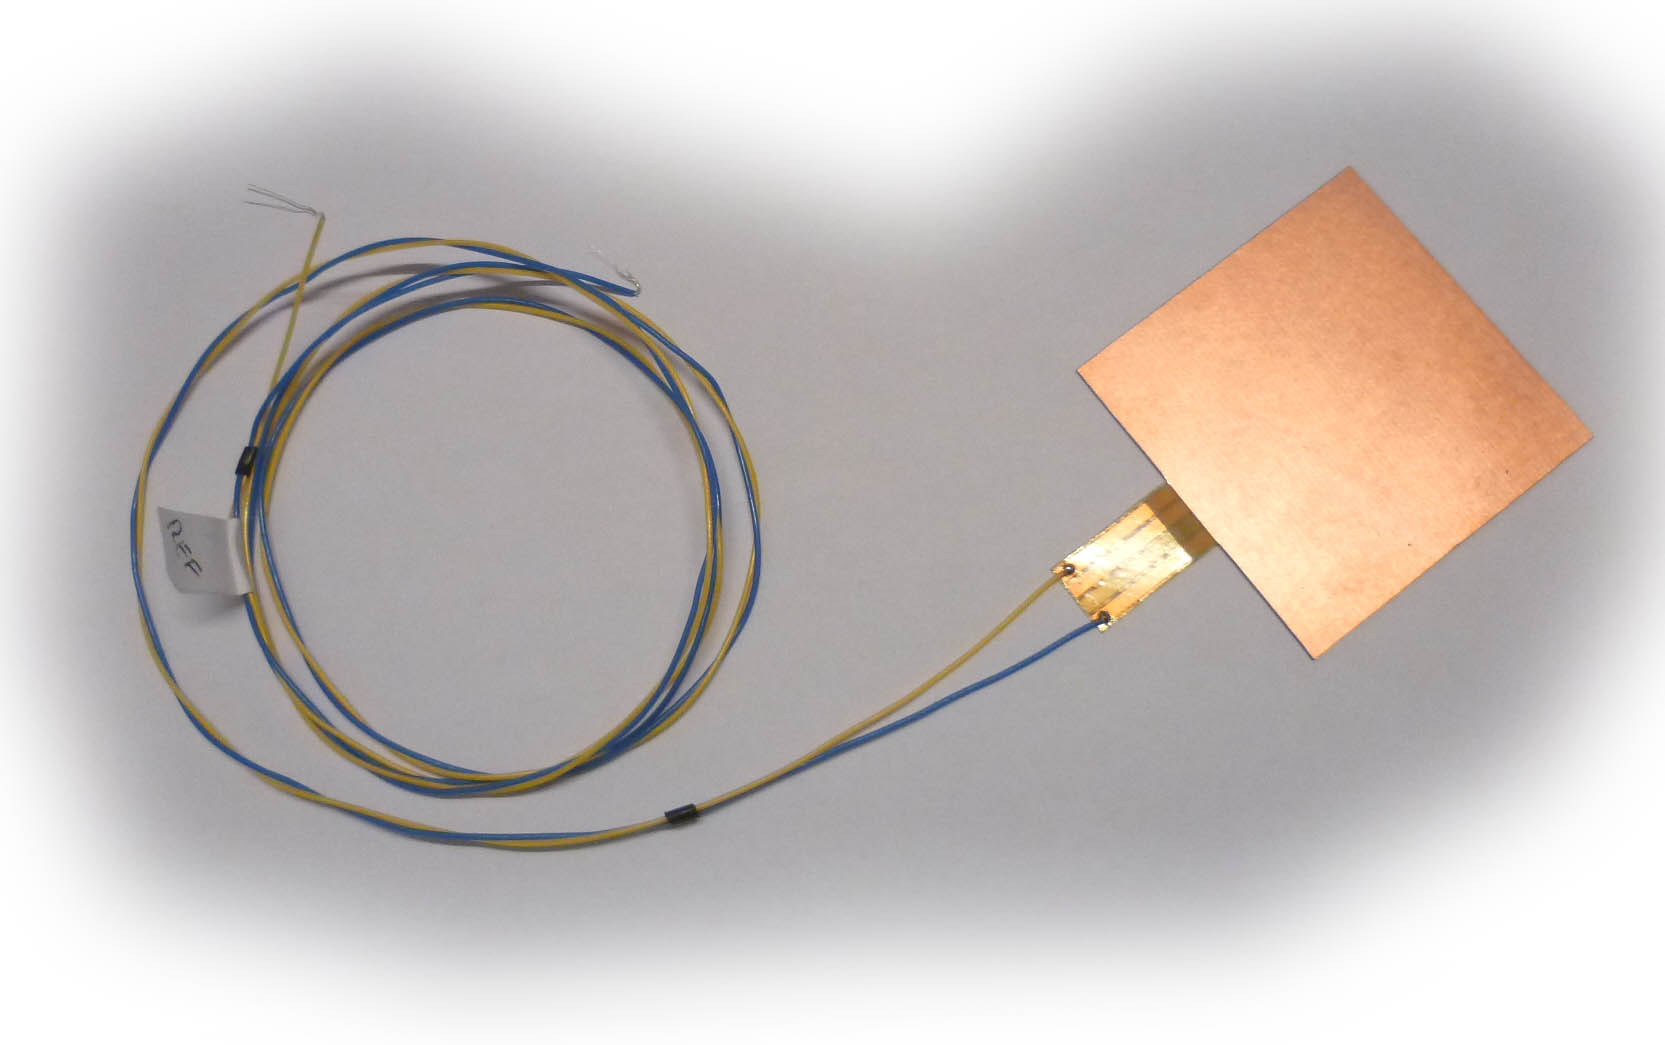 50x50mm heat flux sensor